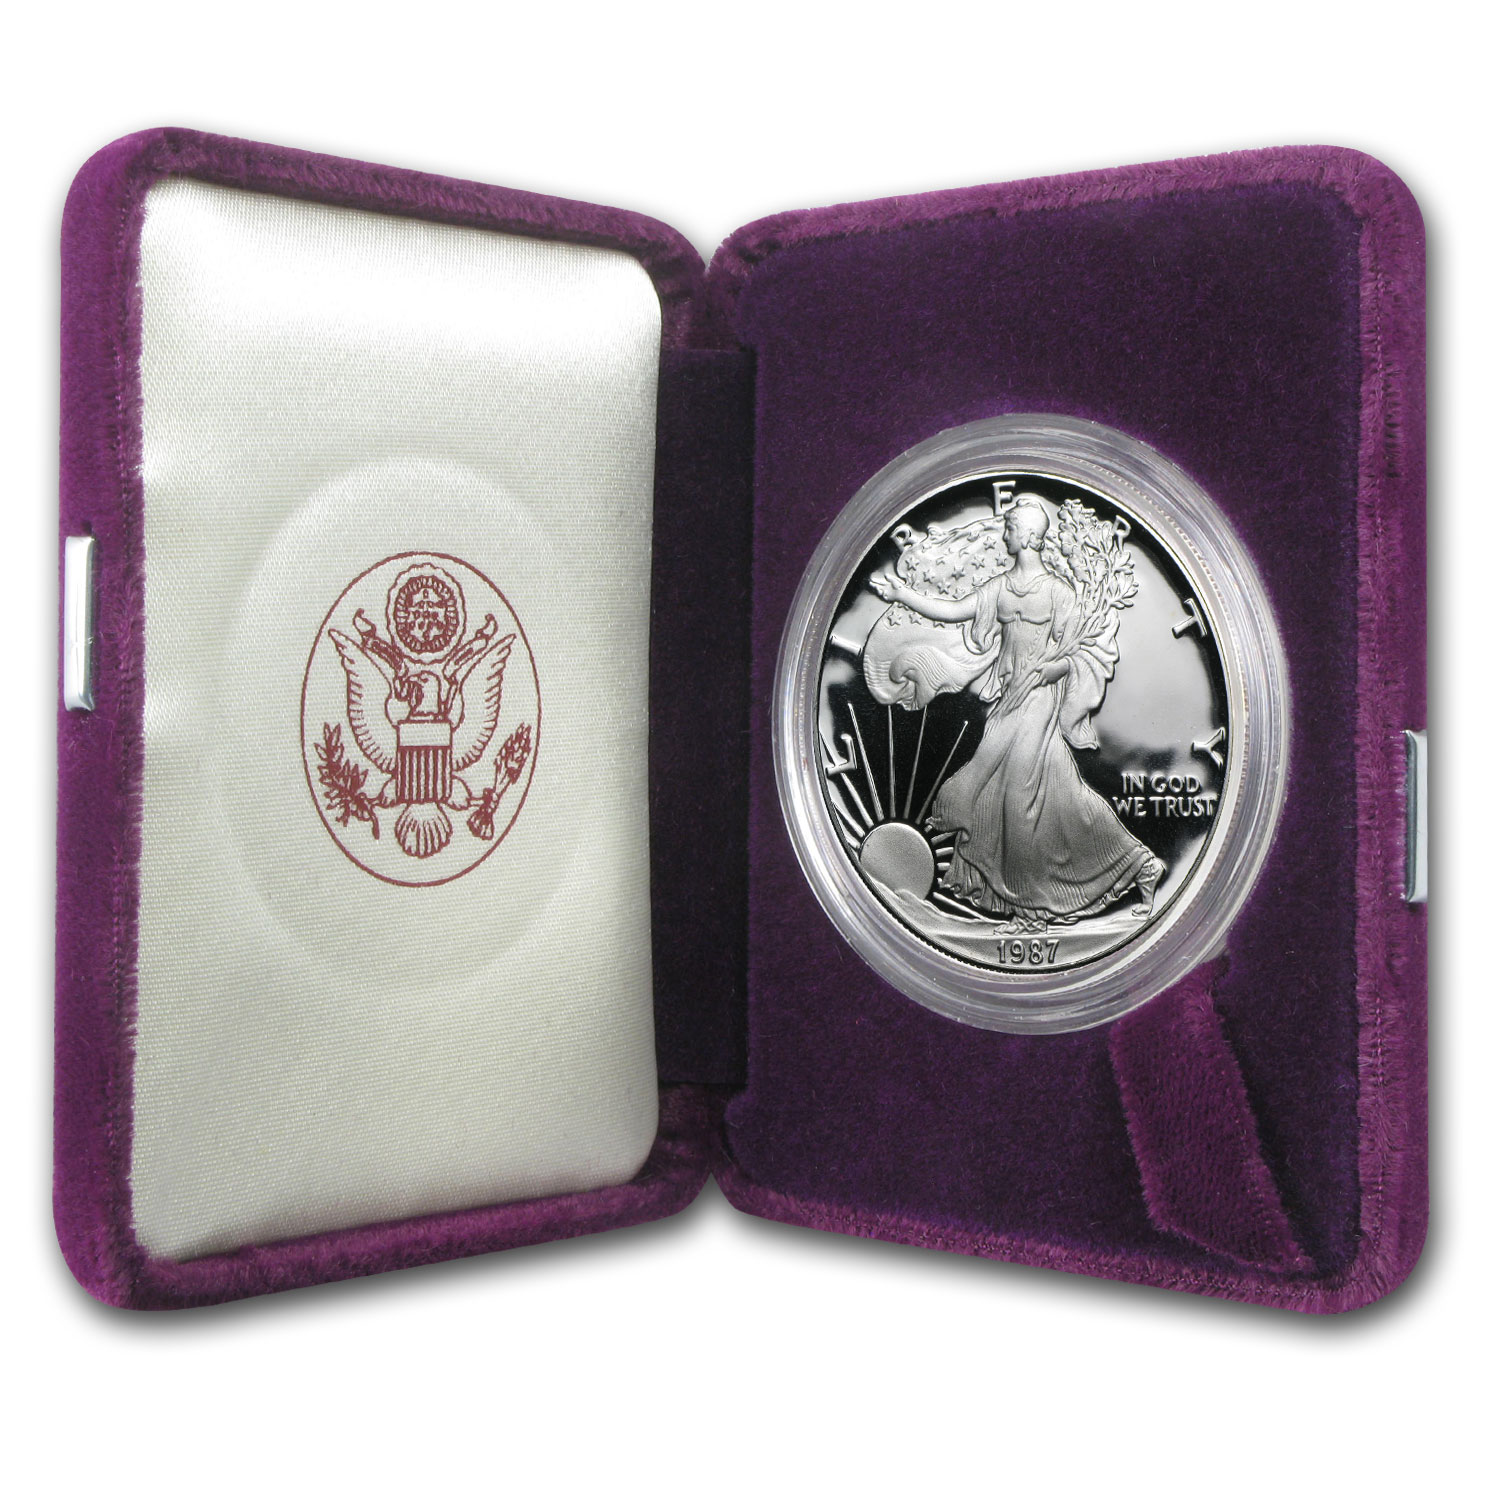 1987-S 1 oz Proof Silver American Eagle (w/Box & COA)